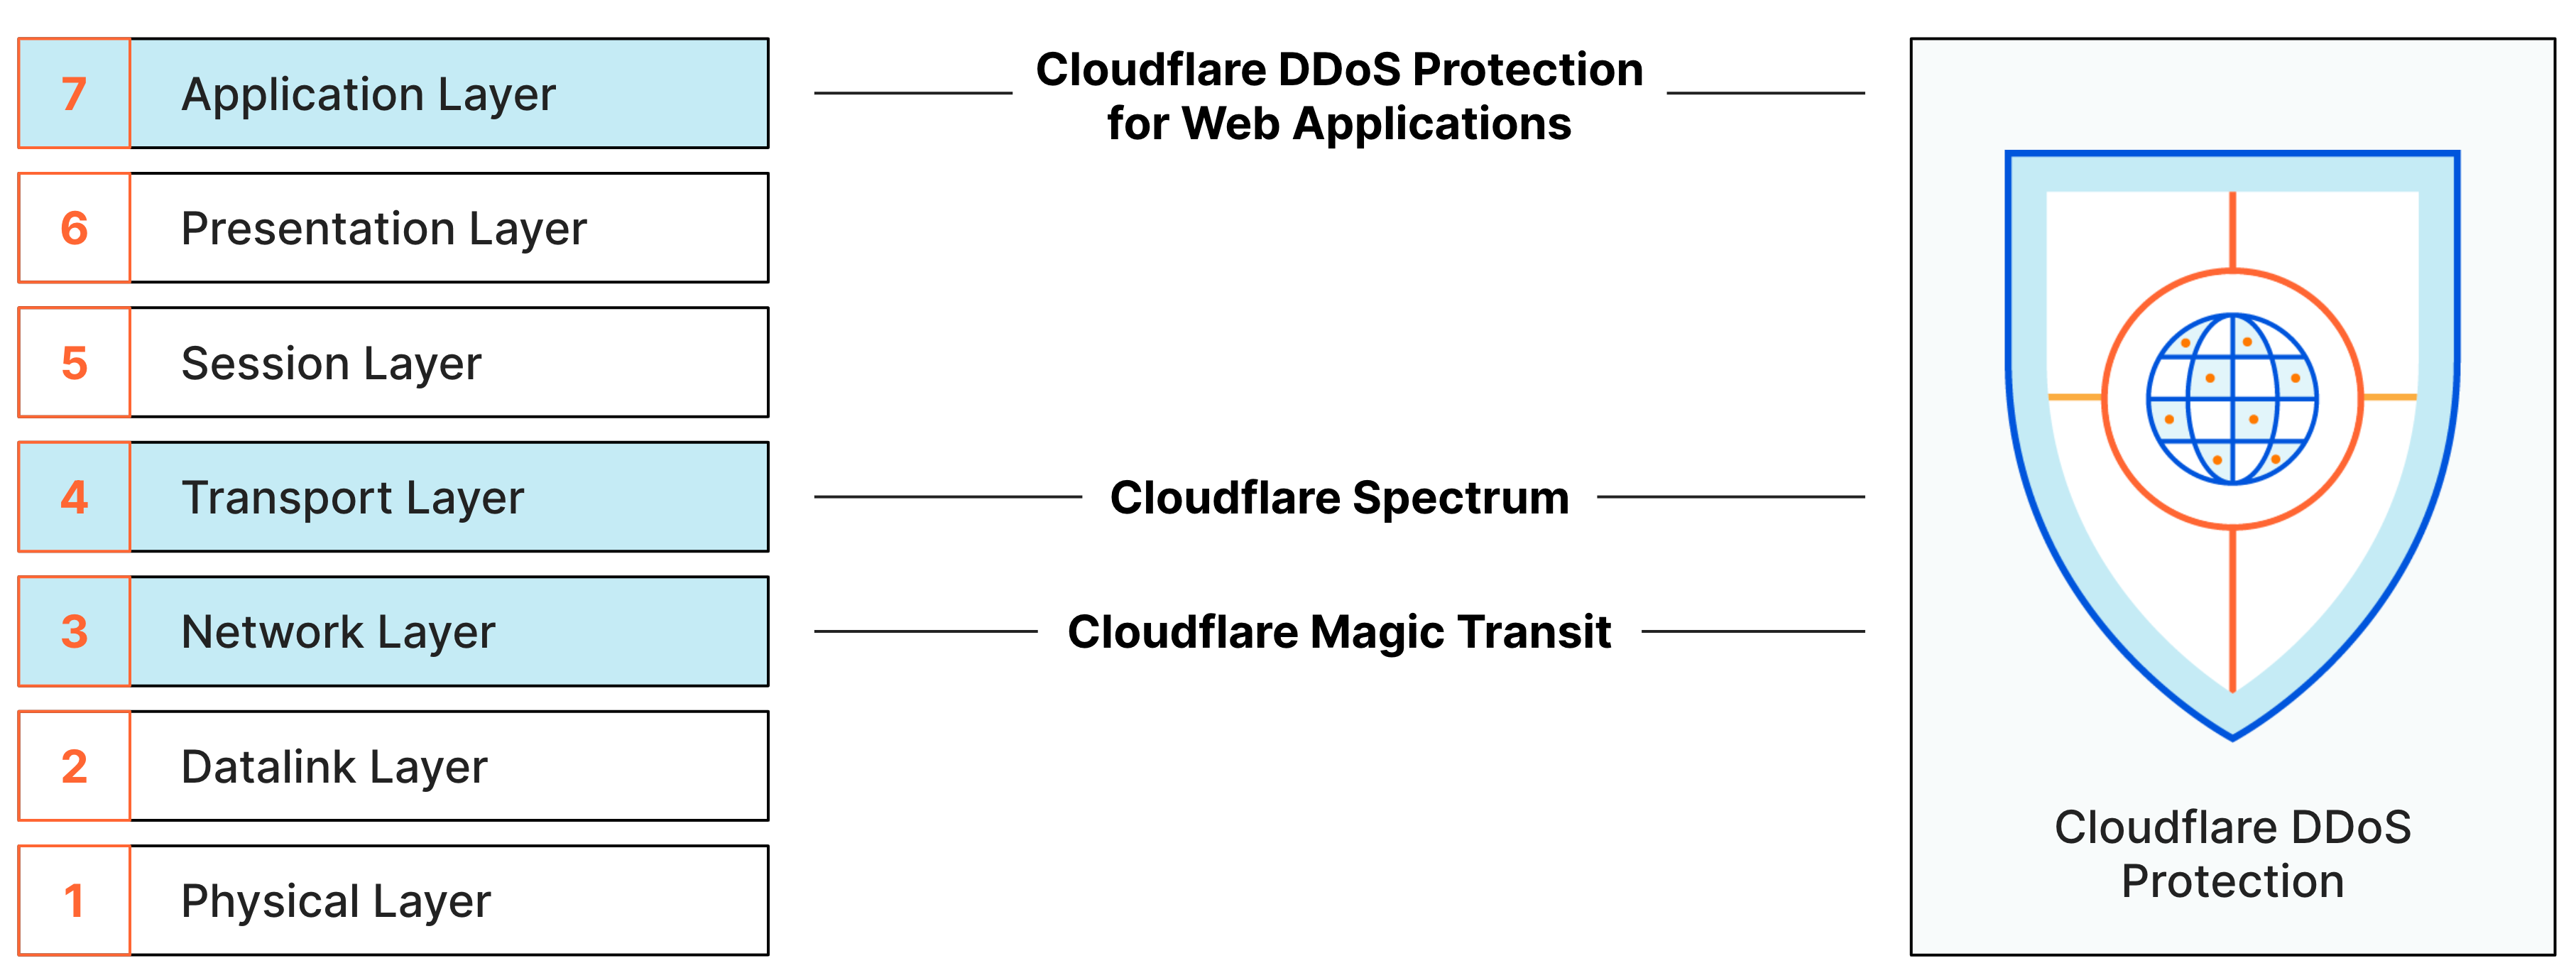 Cloudflare DDoS Protection OSI Layers